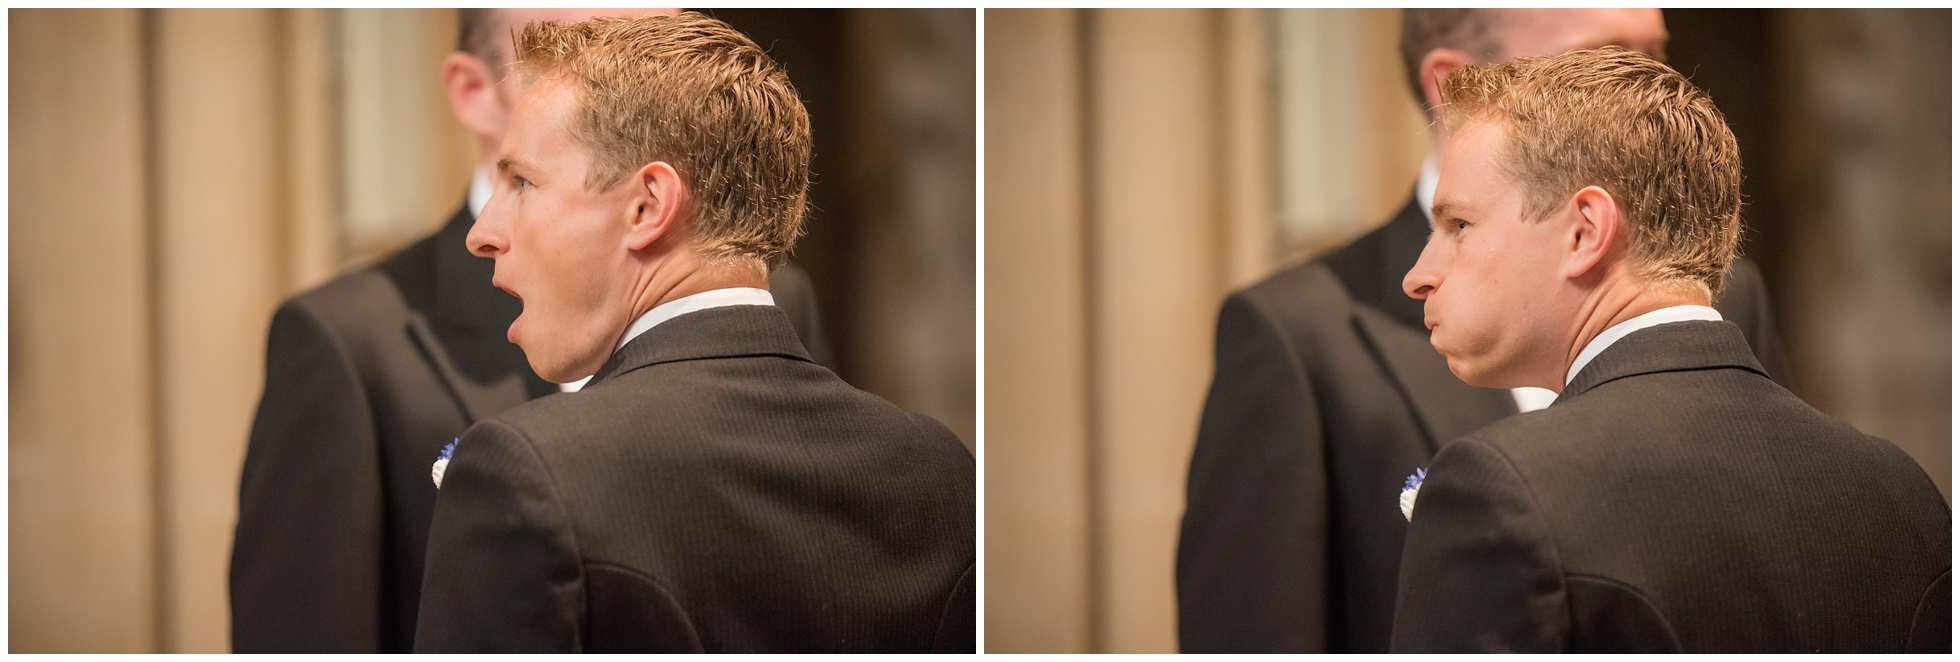 A nervous groom Christ Church College Cathedral Wedding